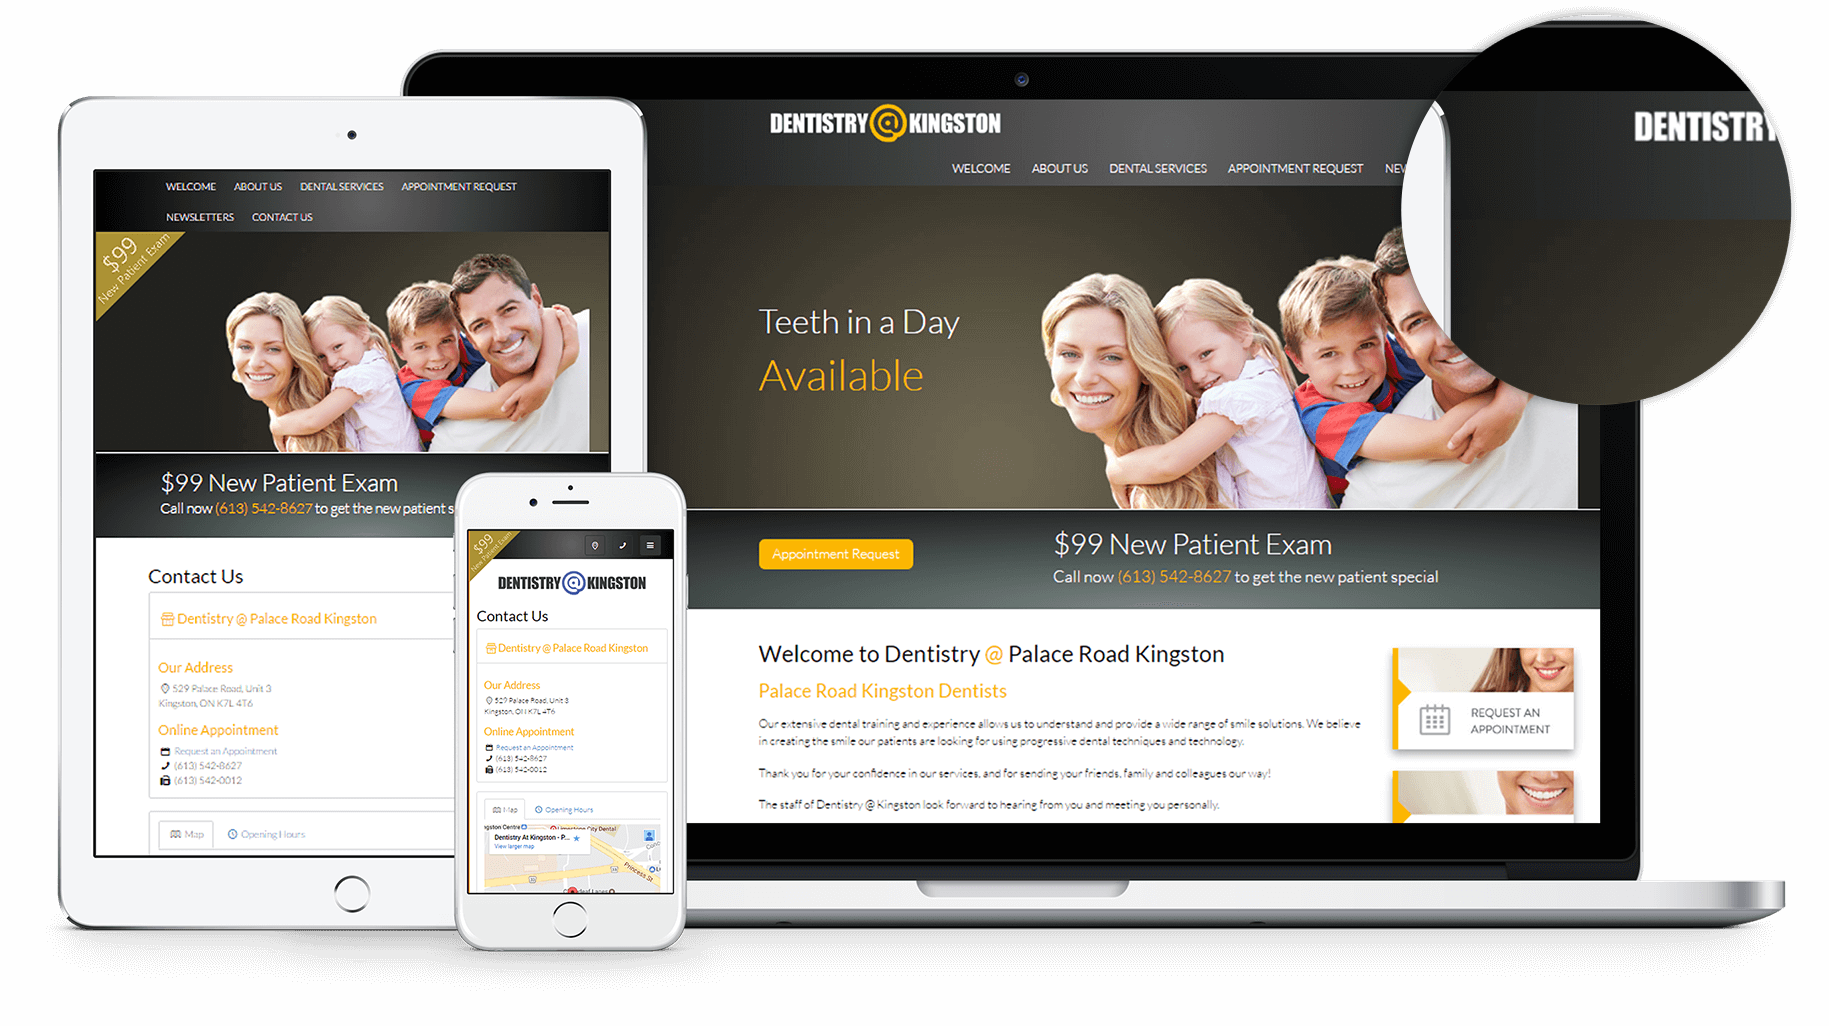 New Website for Dentistry at Kingston